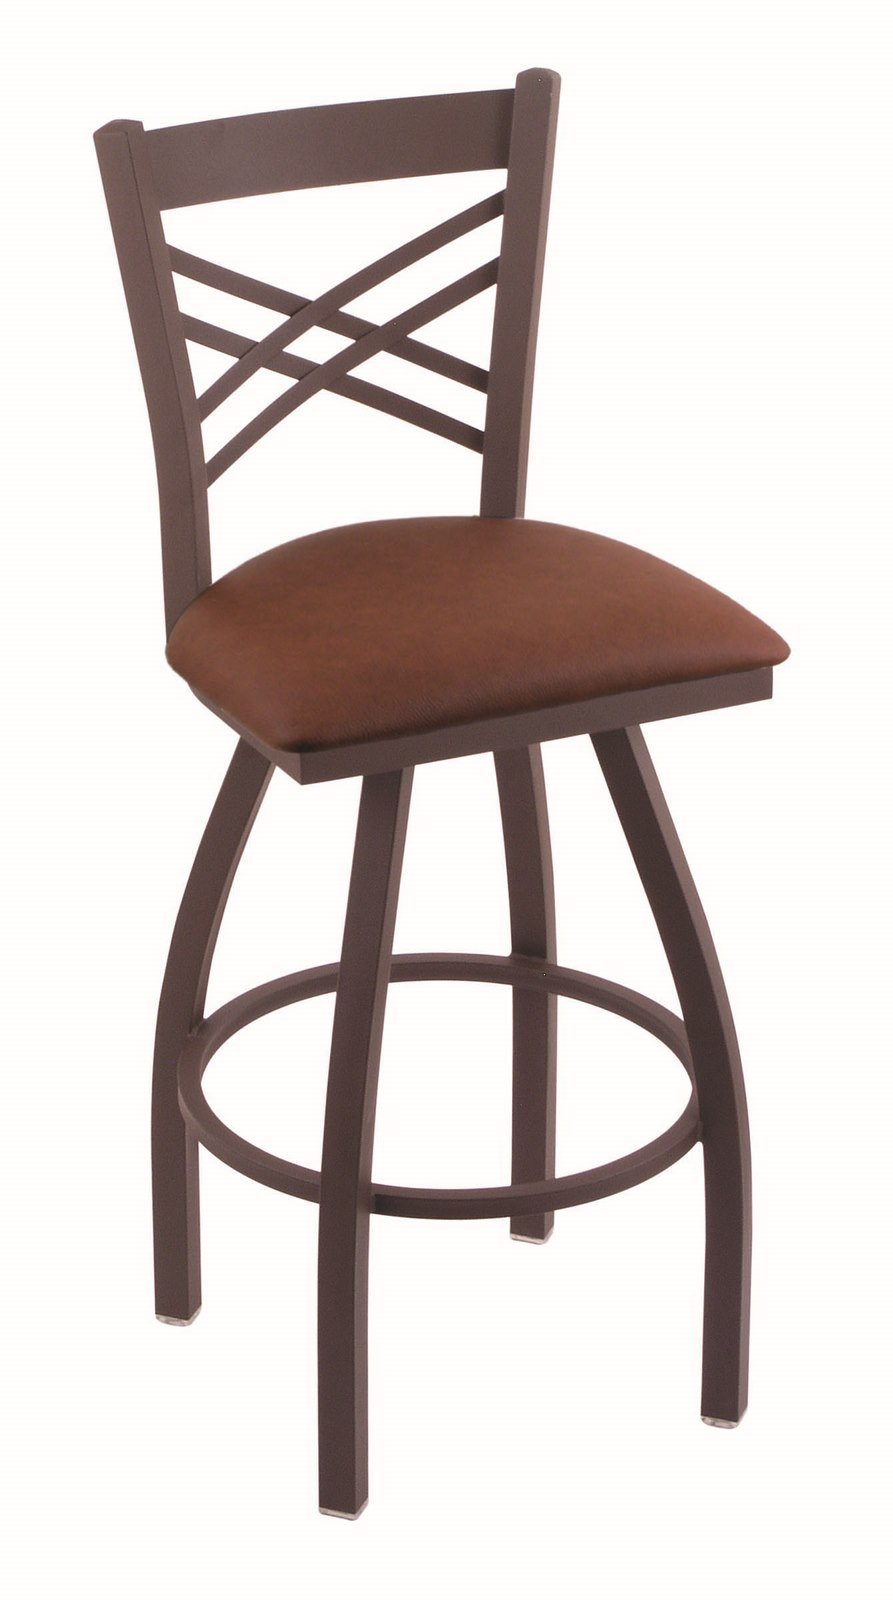 Holland Bar Stool Co. 820 Catalina 36'' Bar Stool with Bronze Finish and Swivel Seat, Rein Adobe by Holland Bar Stool Co.